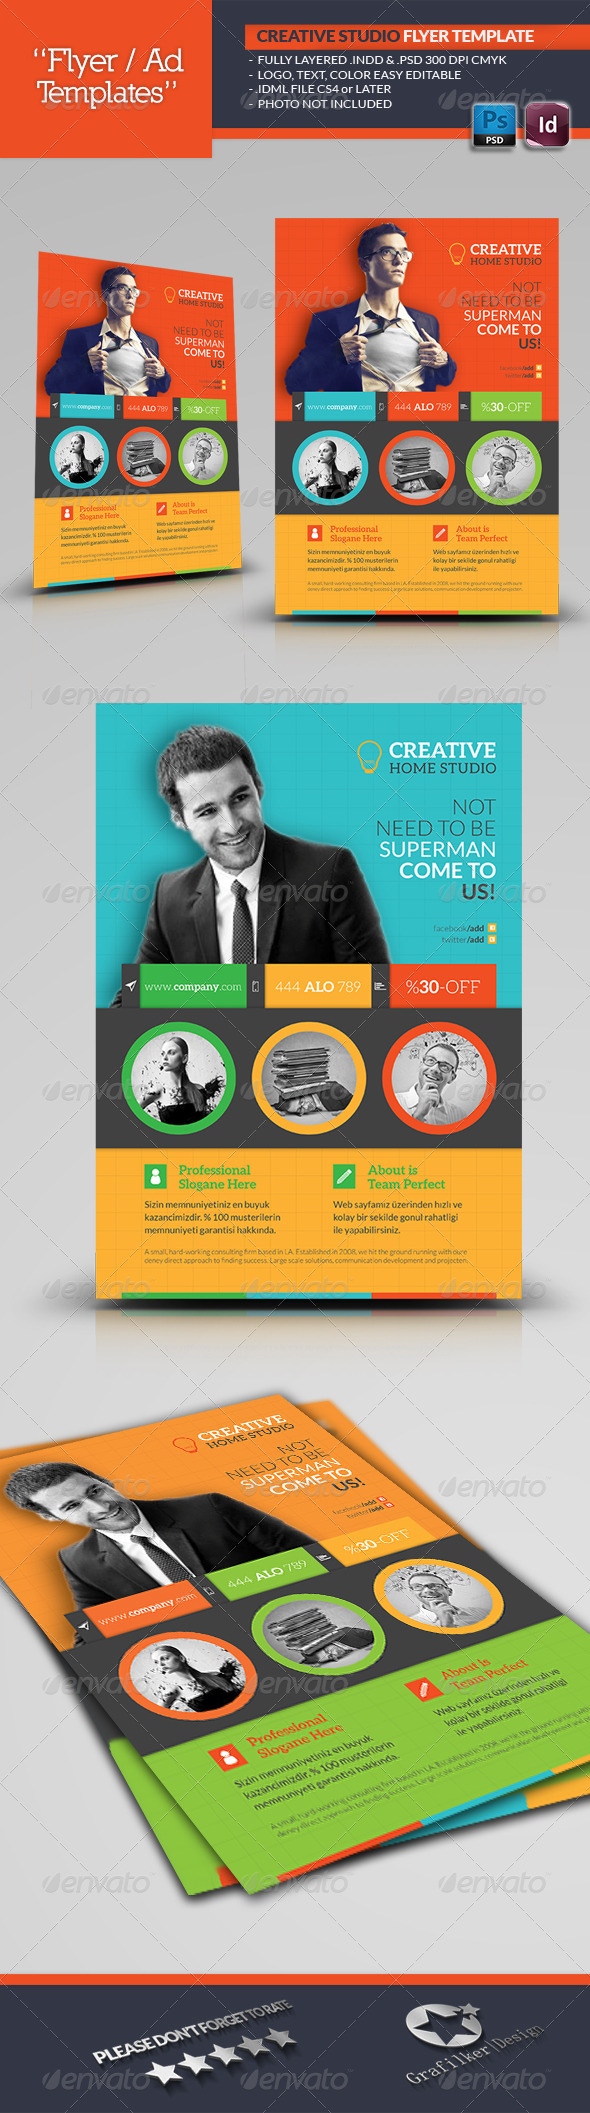 Creative Studio Flyer Template - Corporate Flyers